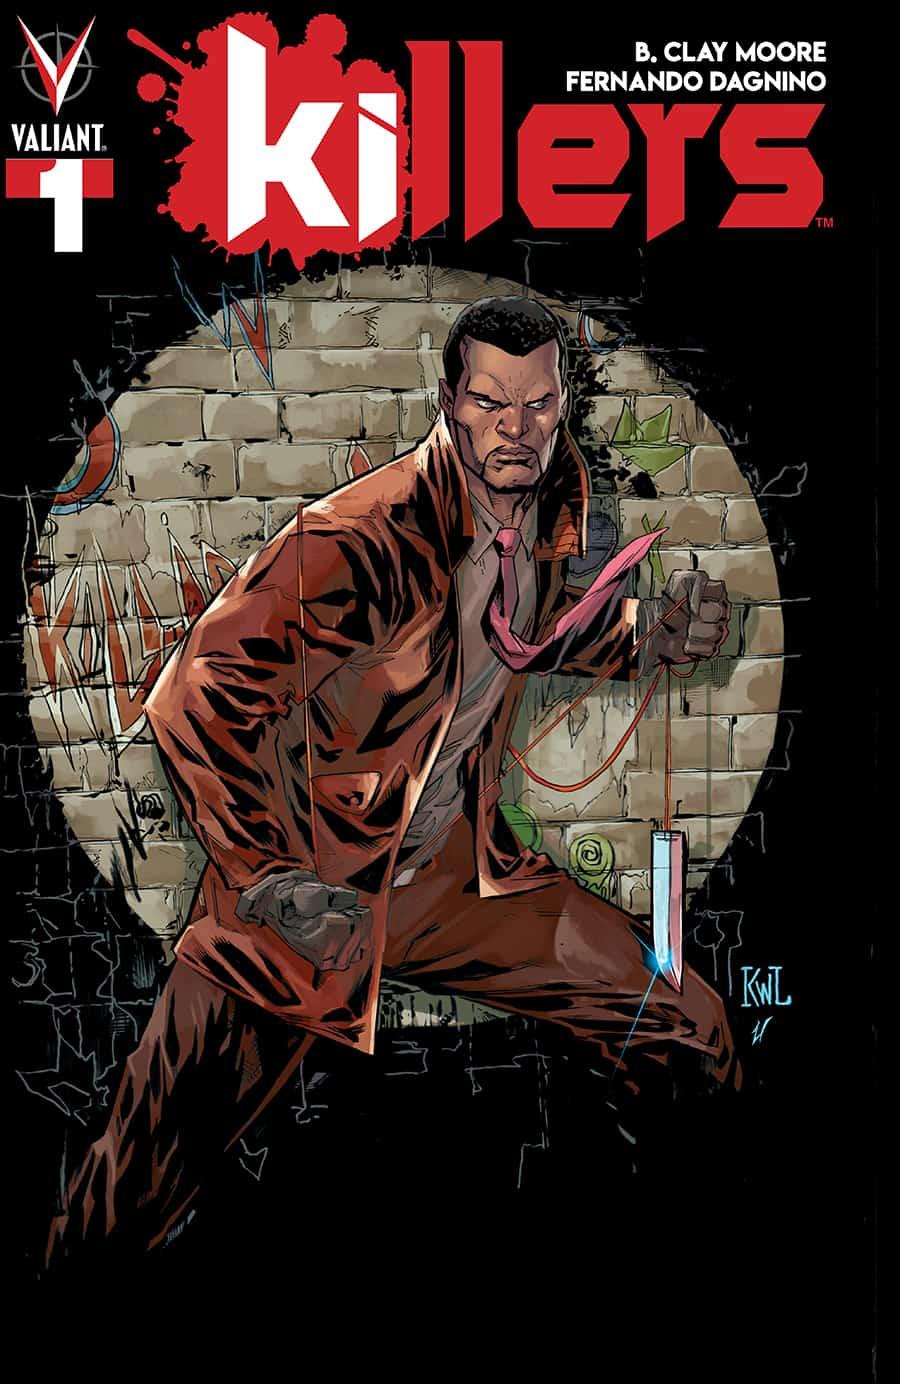 KILLERS #1 - Cover C